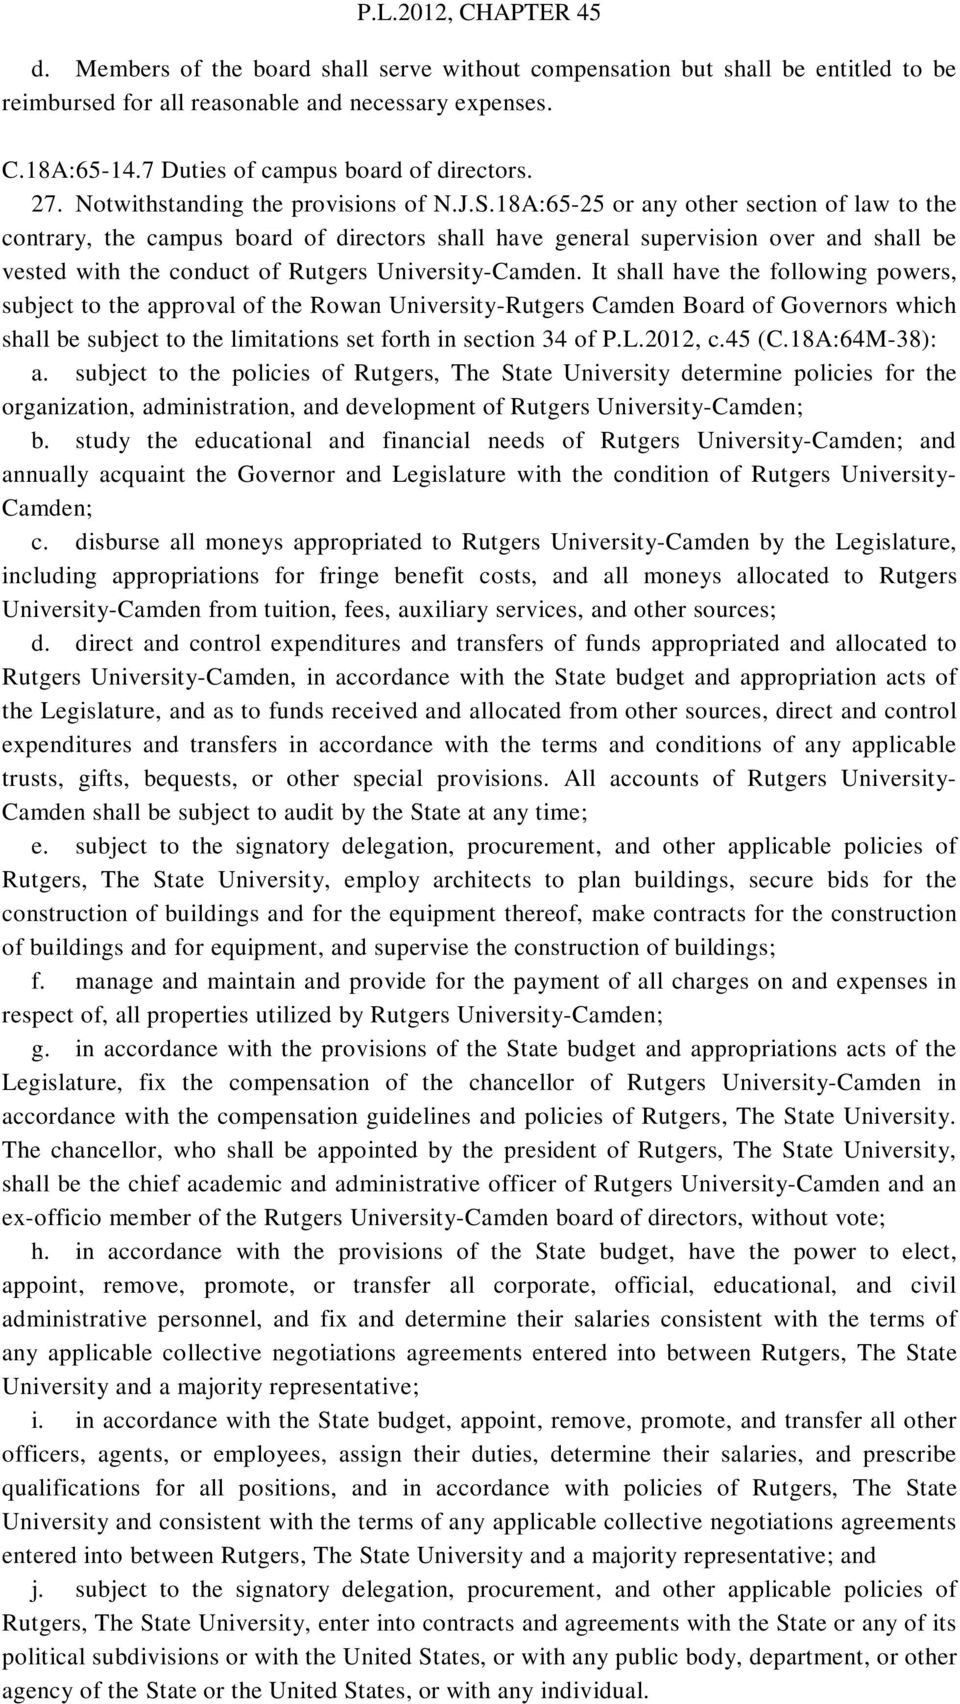 18A:65-25 or any other section of law to the contrary, the campus board of directors shall have general supervision over and shall be vested with the conduct of Rutgers University-Camden.